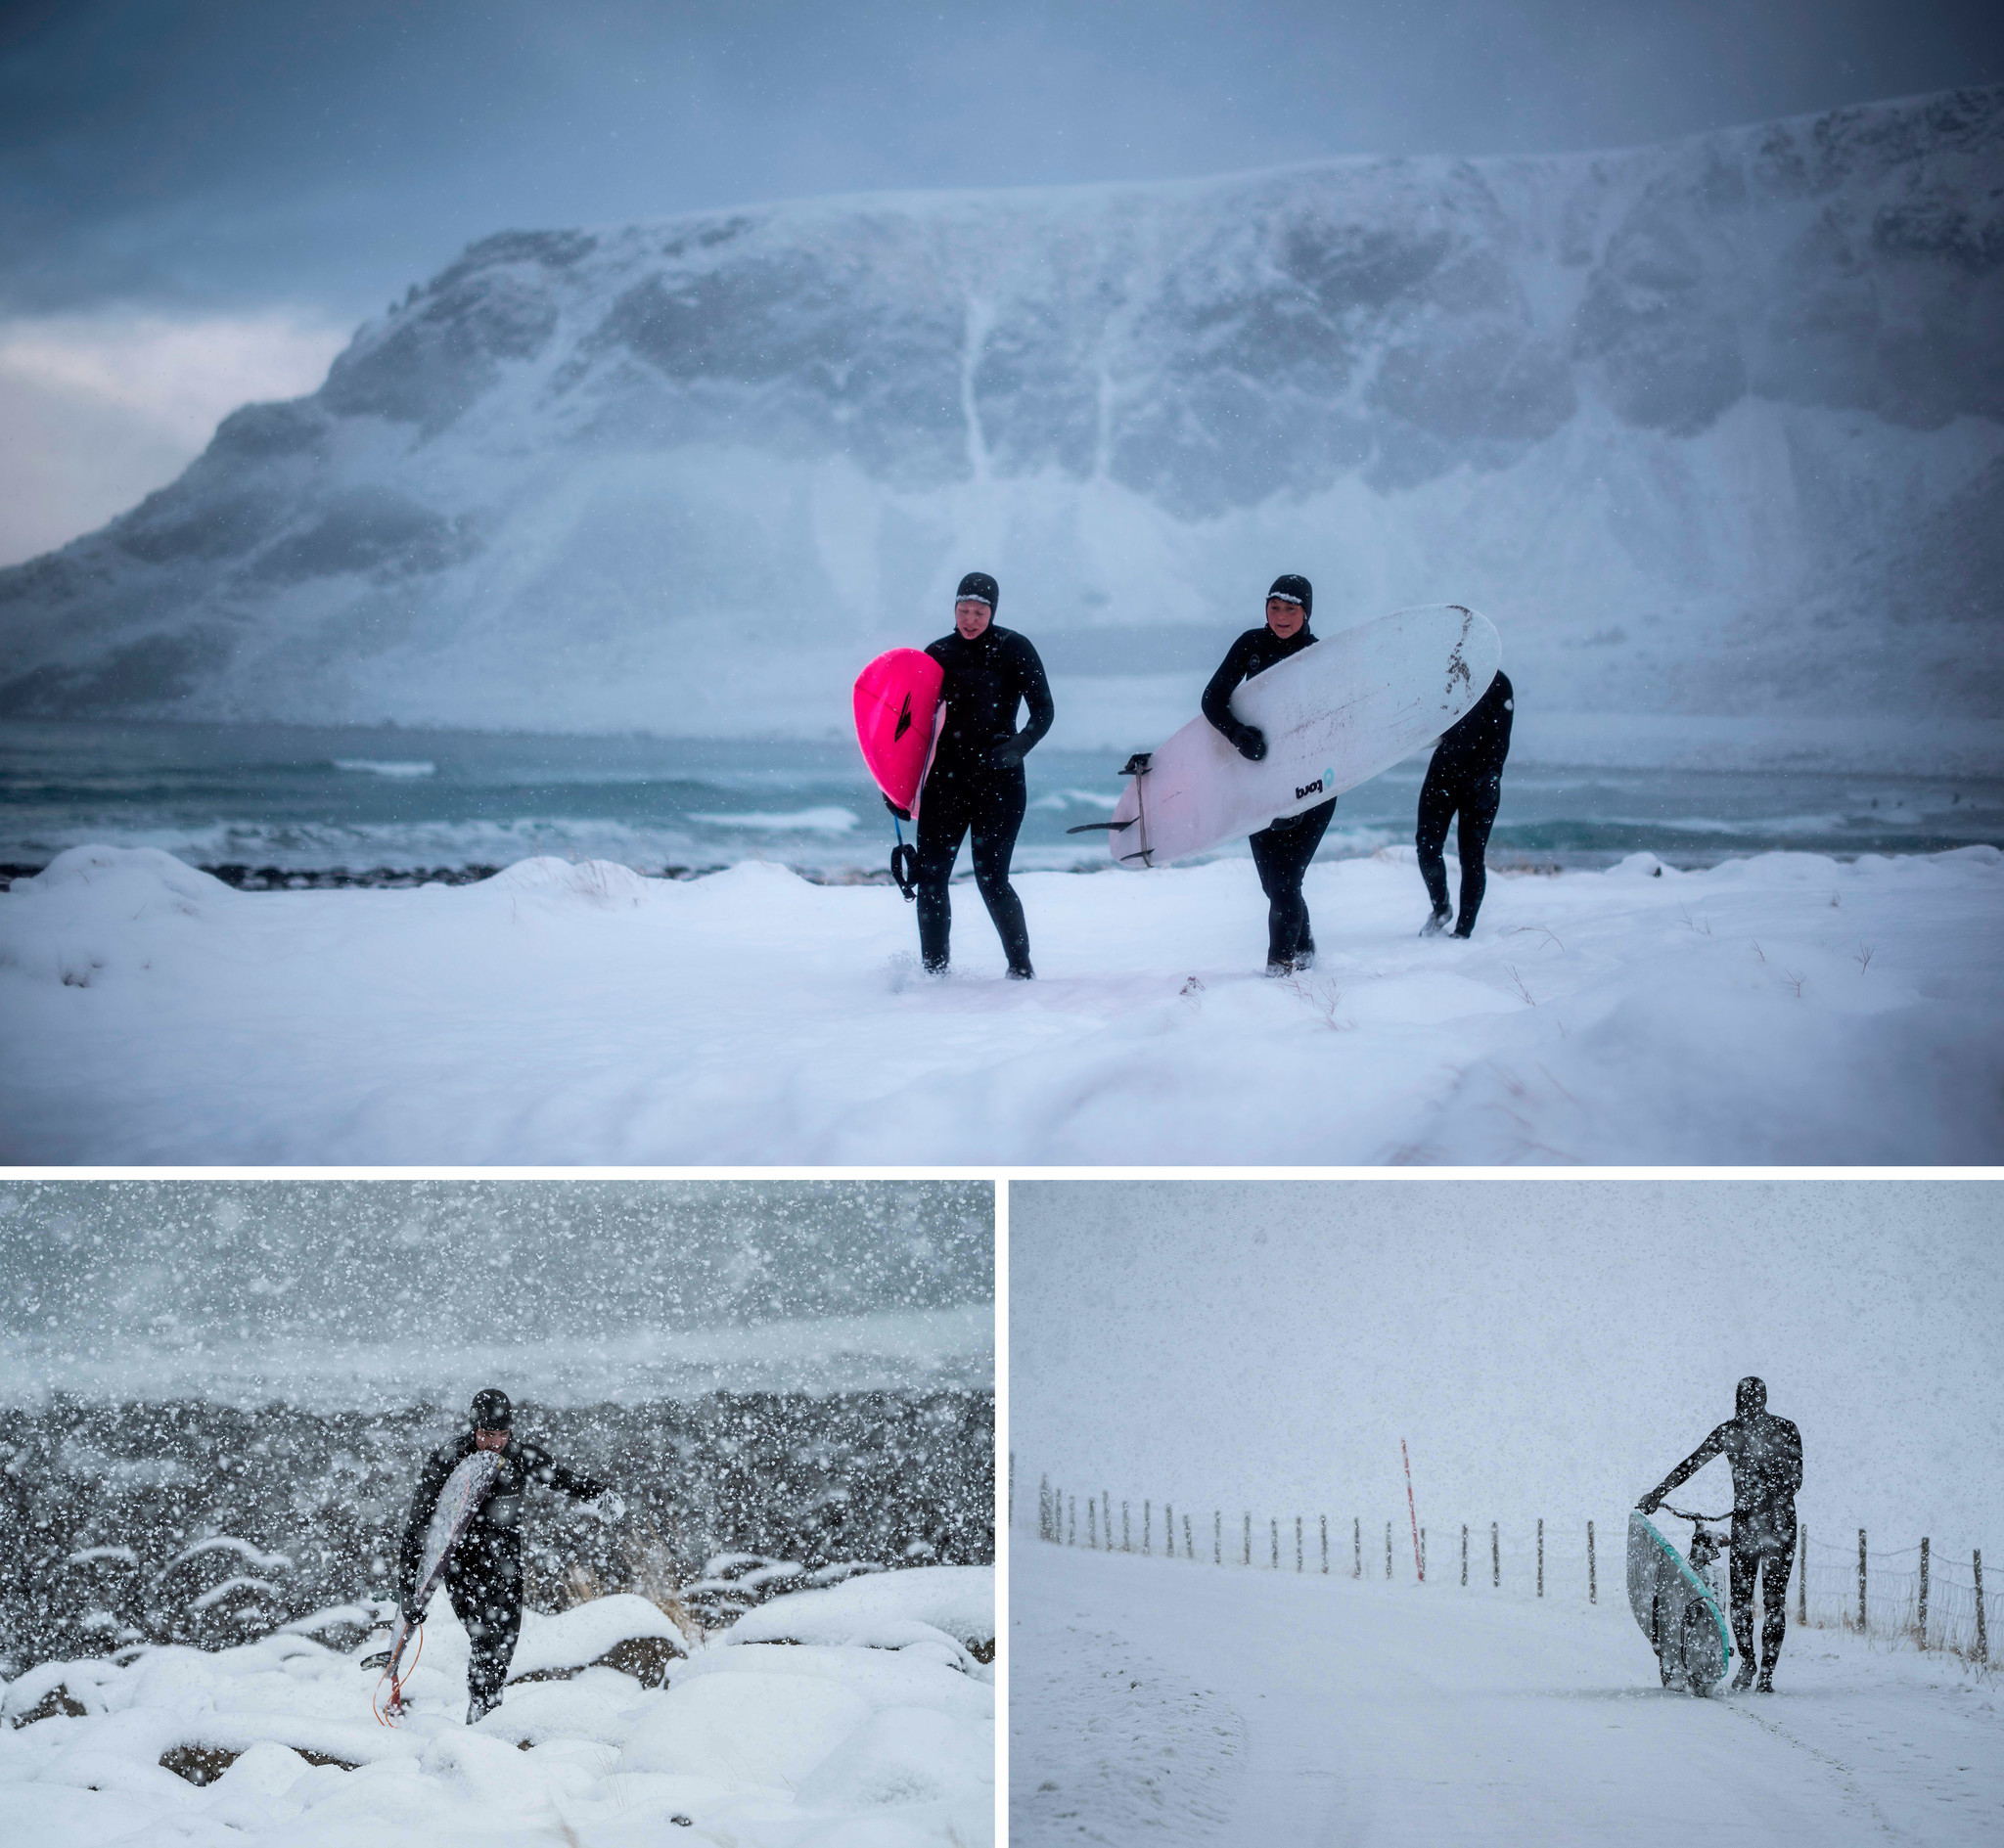 WAY-LIFESTYLE-TOURISM-SURFING-WEATHER-ARCTIC